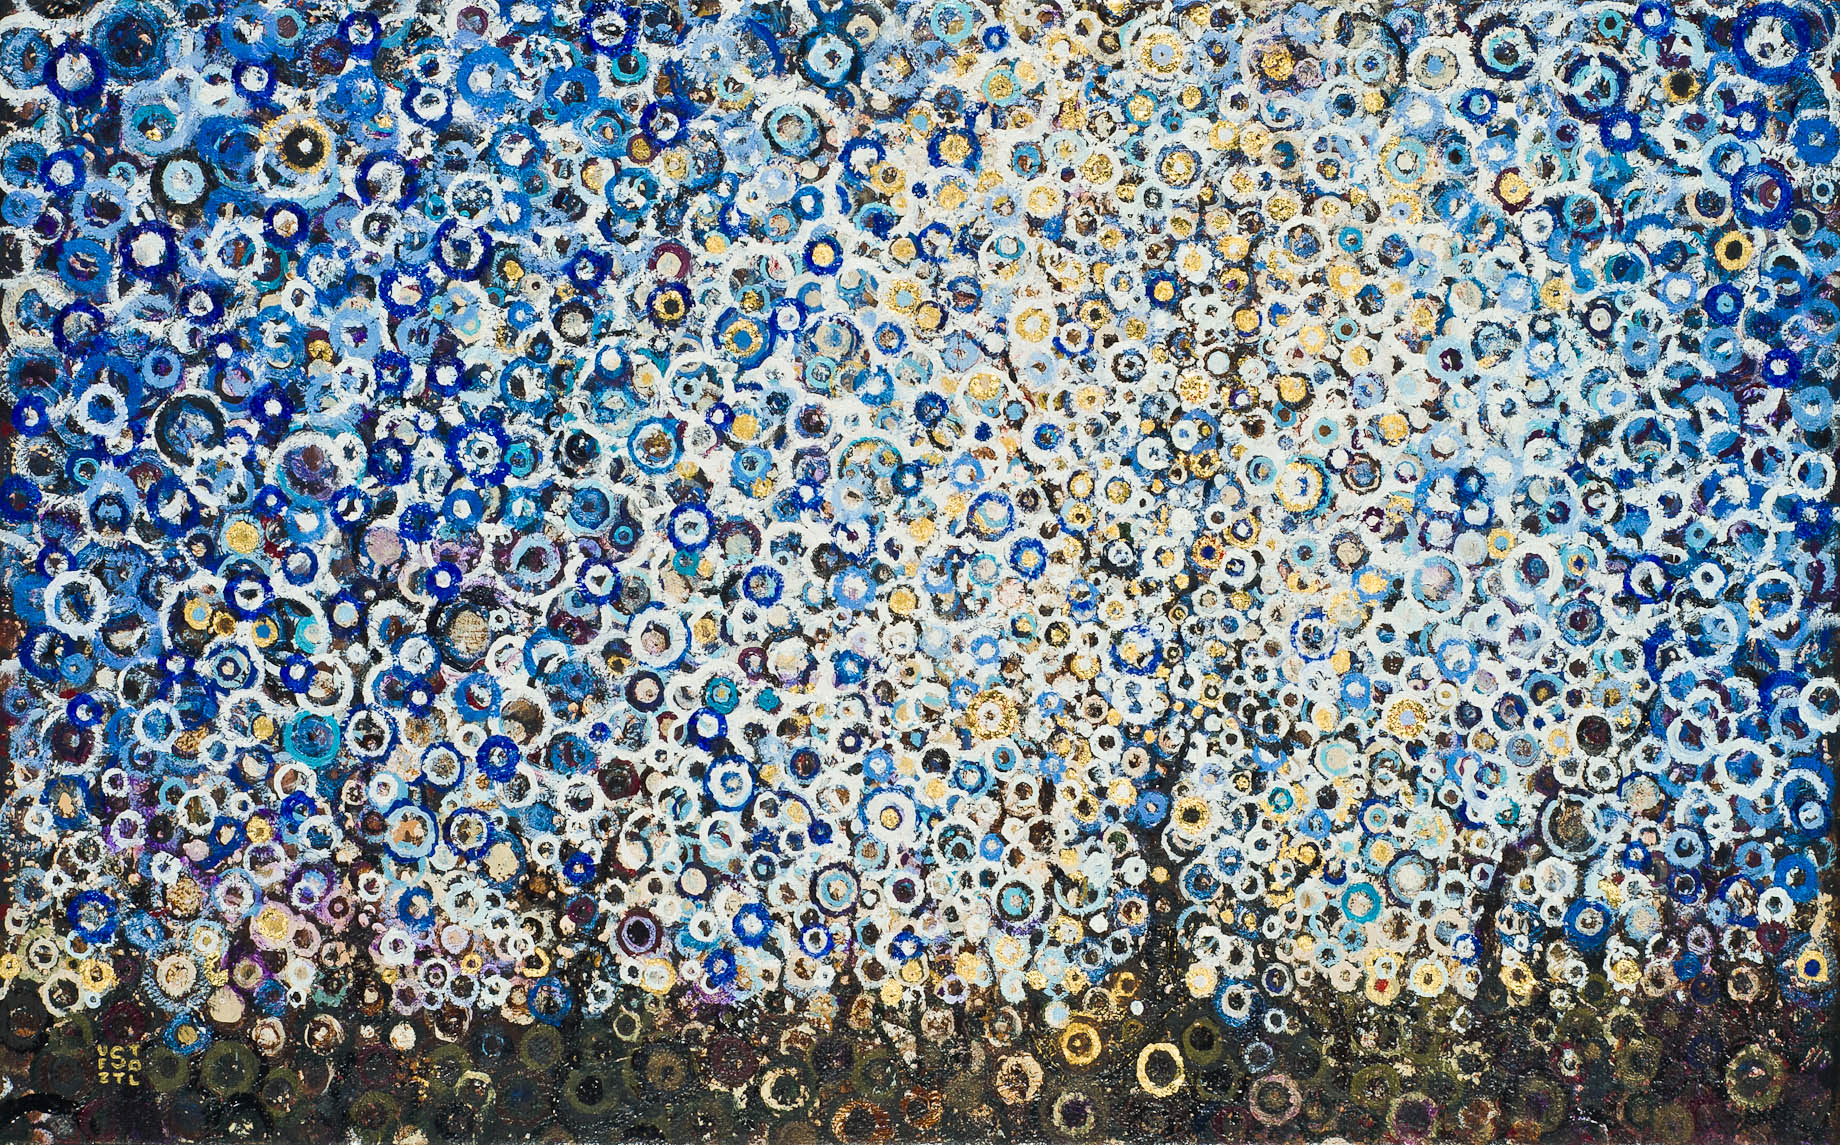 """Solstice"" by Randall Stoltzfus, 2011, oil an gold leaf on linen, 15 by 24 inches"